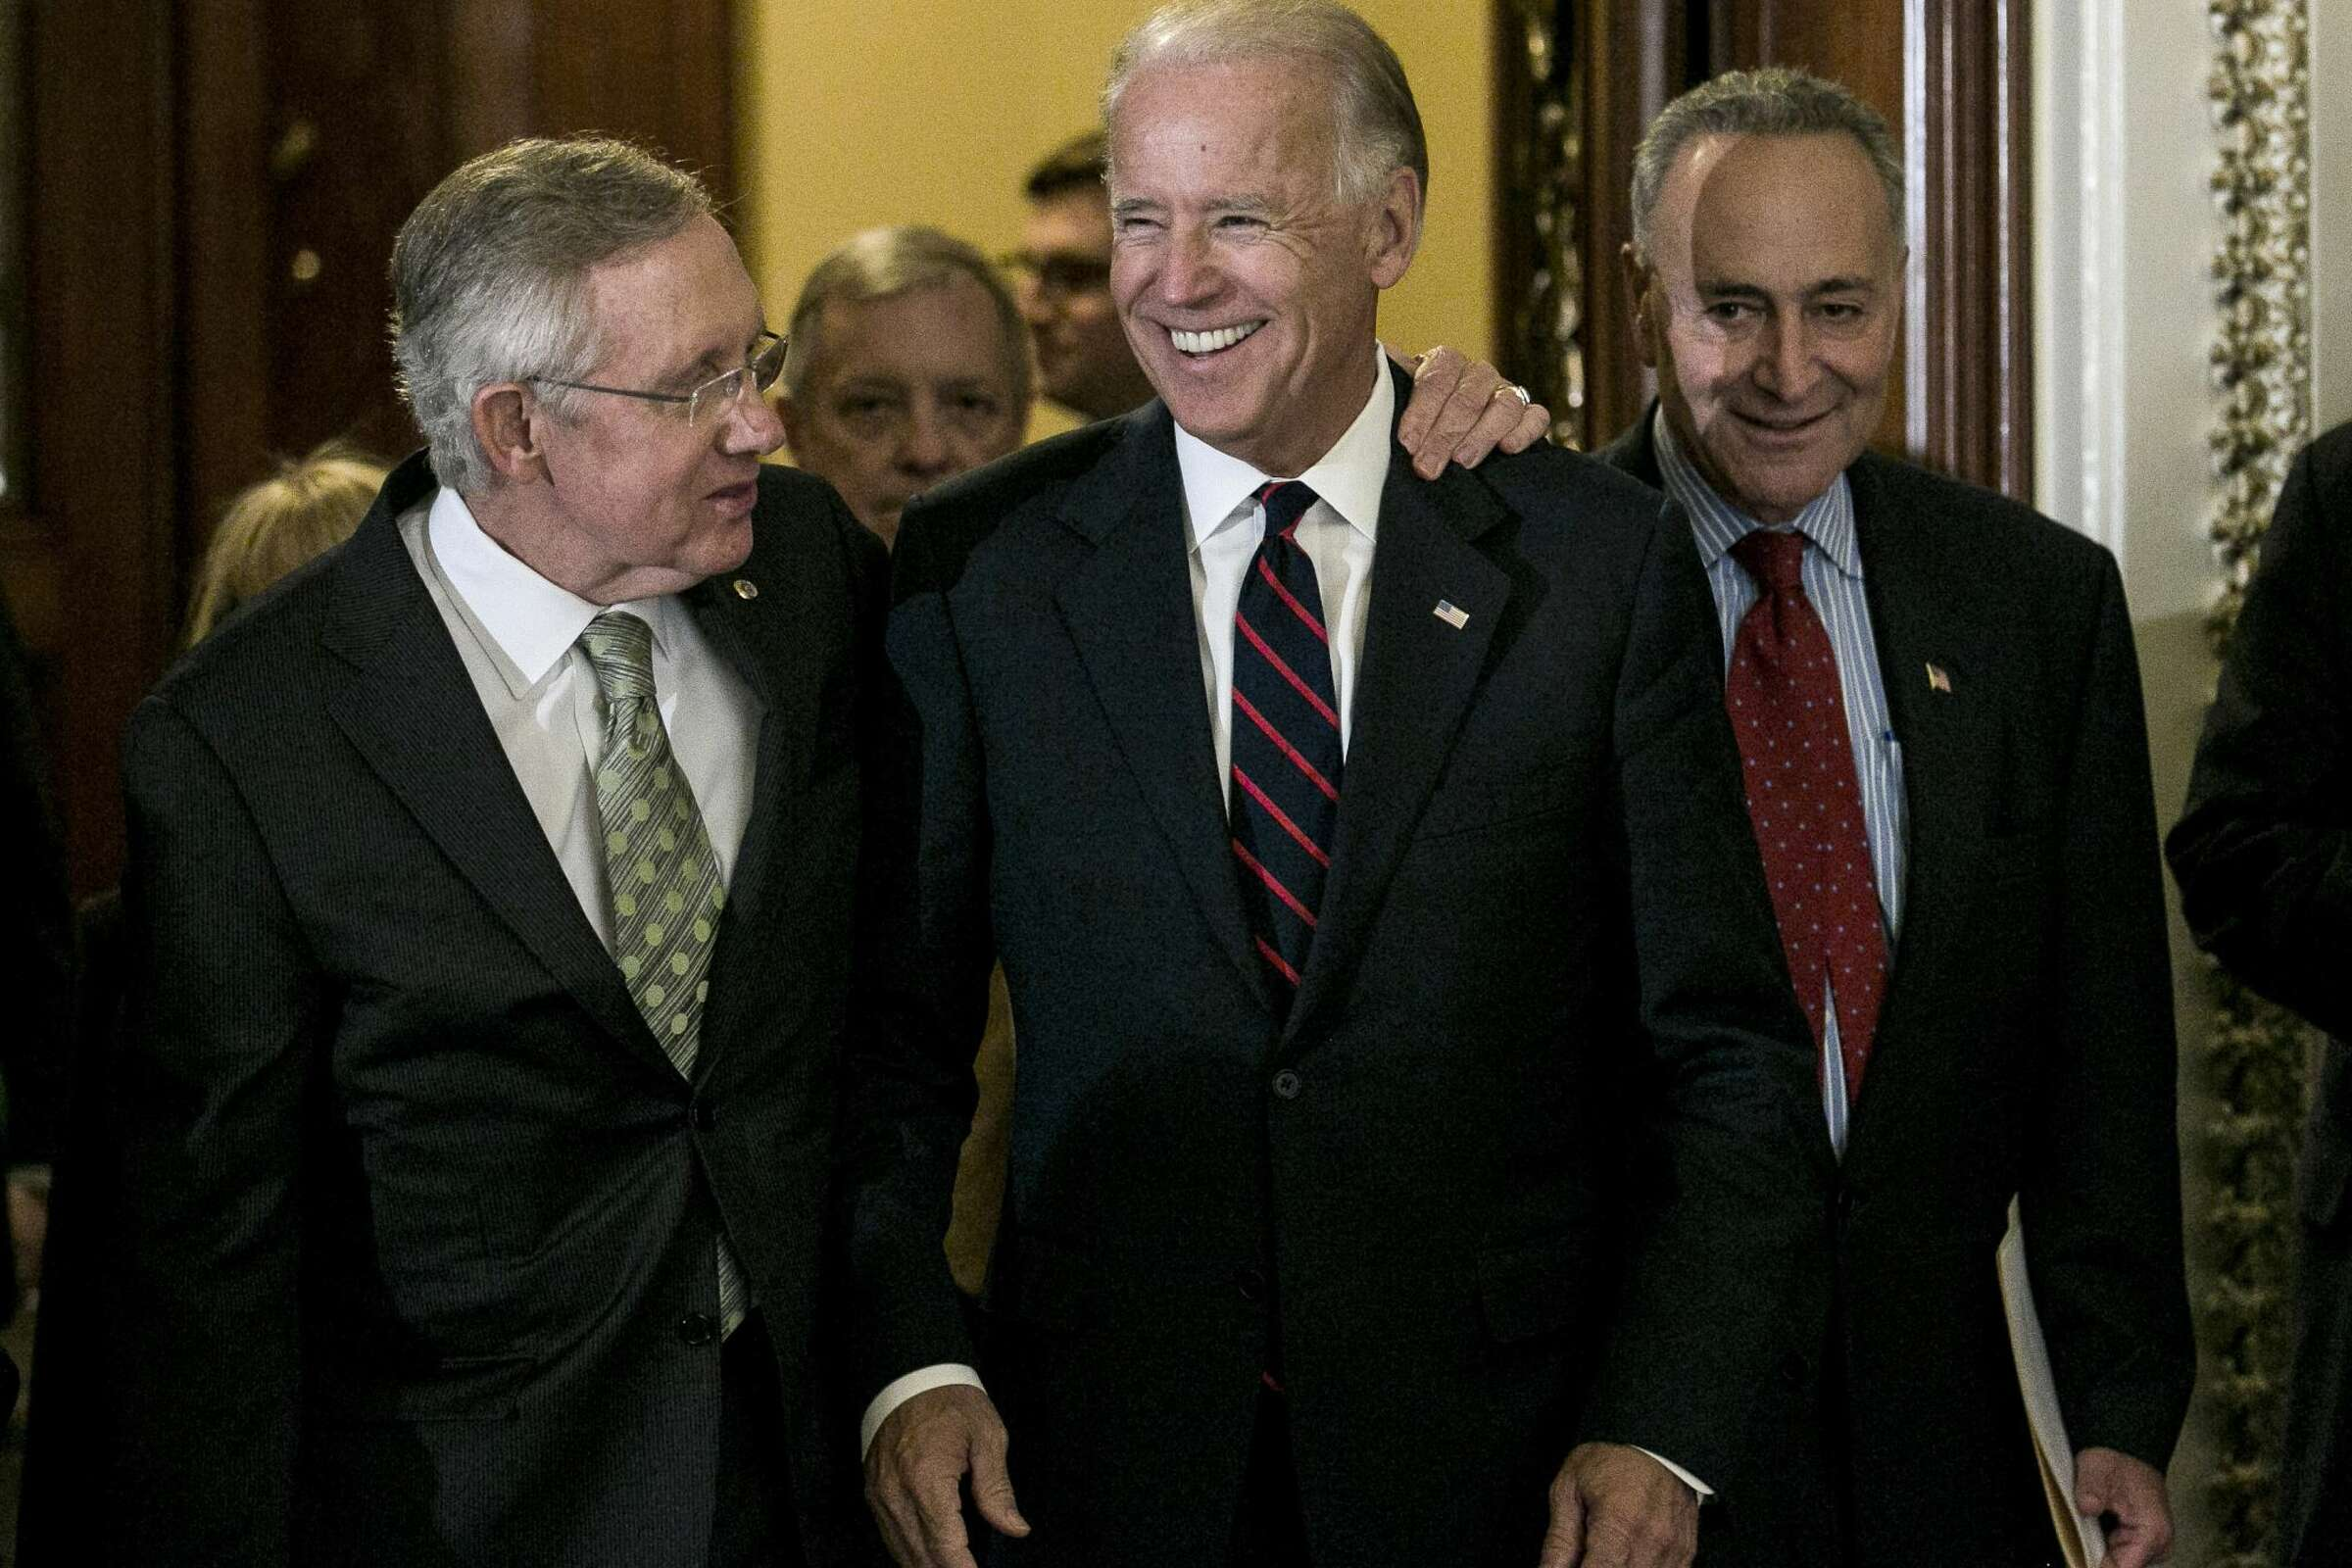 Senators Harry Reid, Joe Biden, and Chuck Schumer walking together